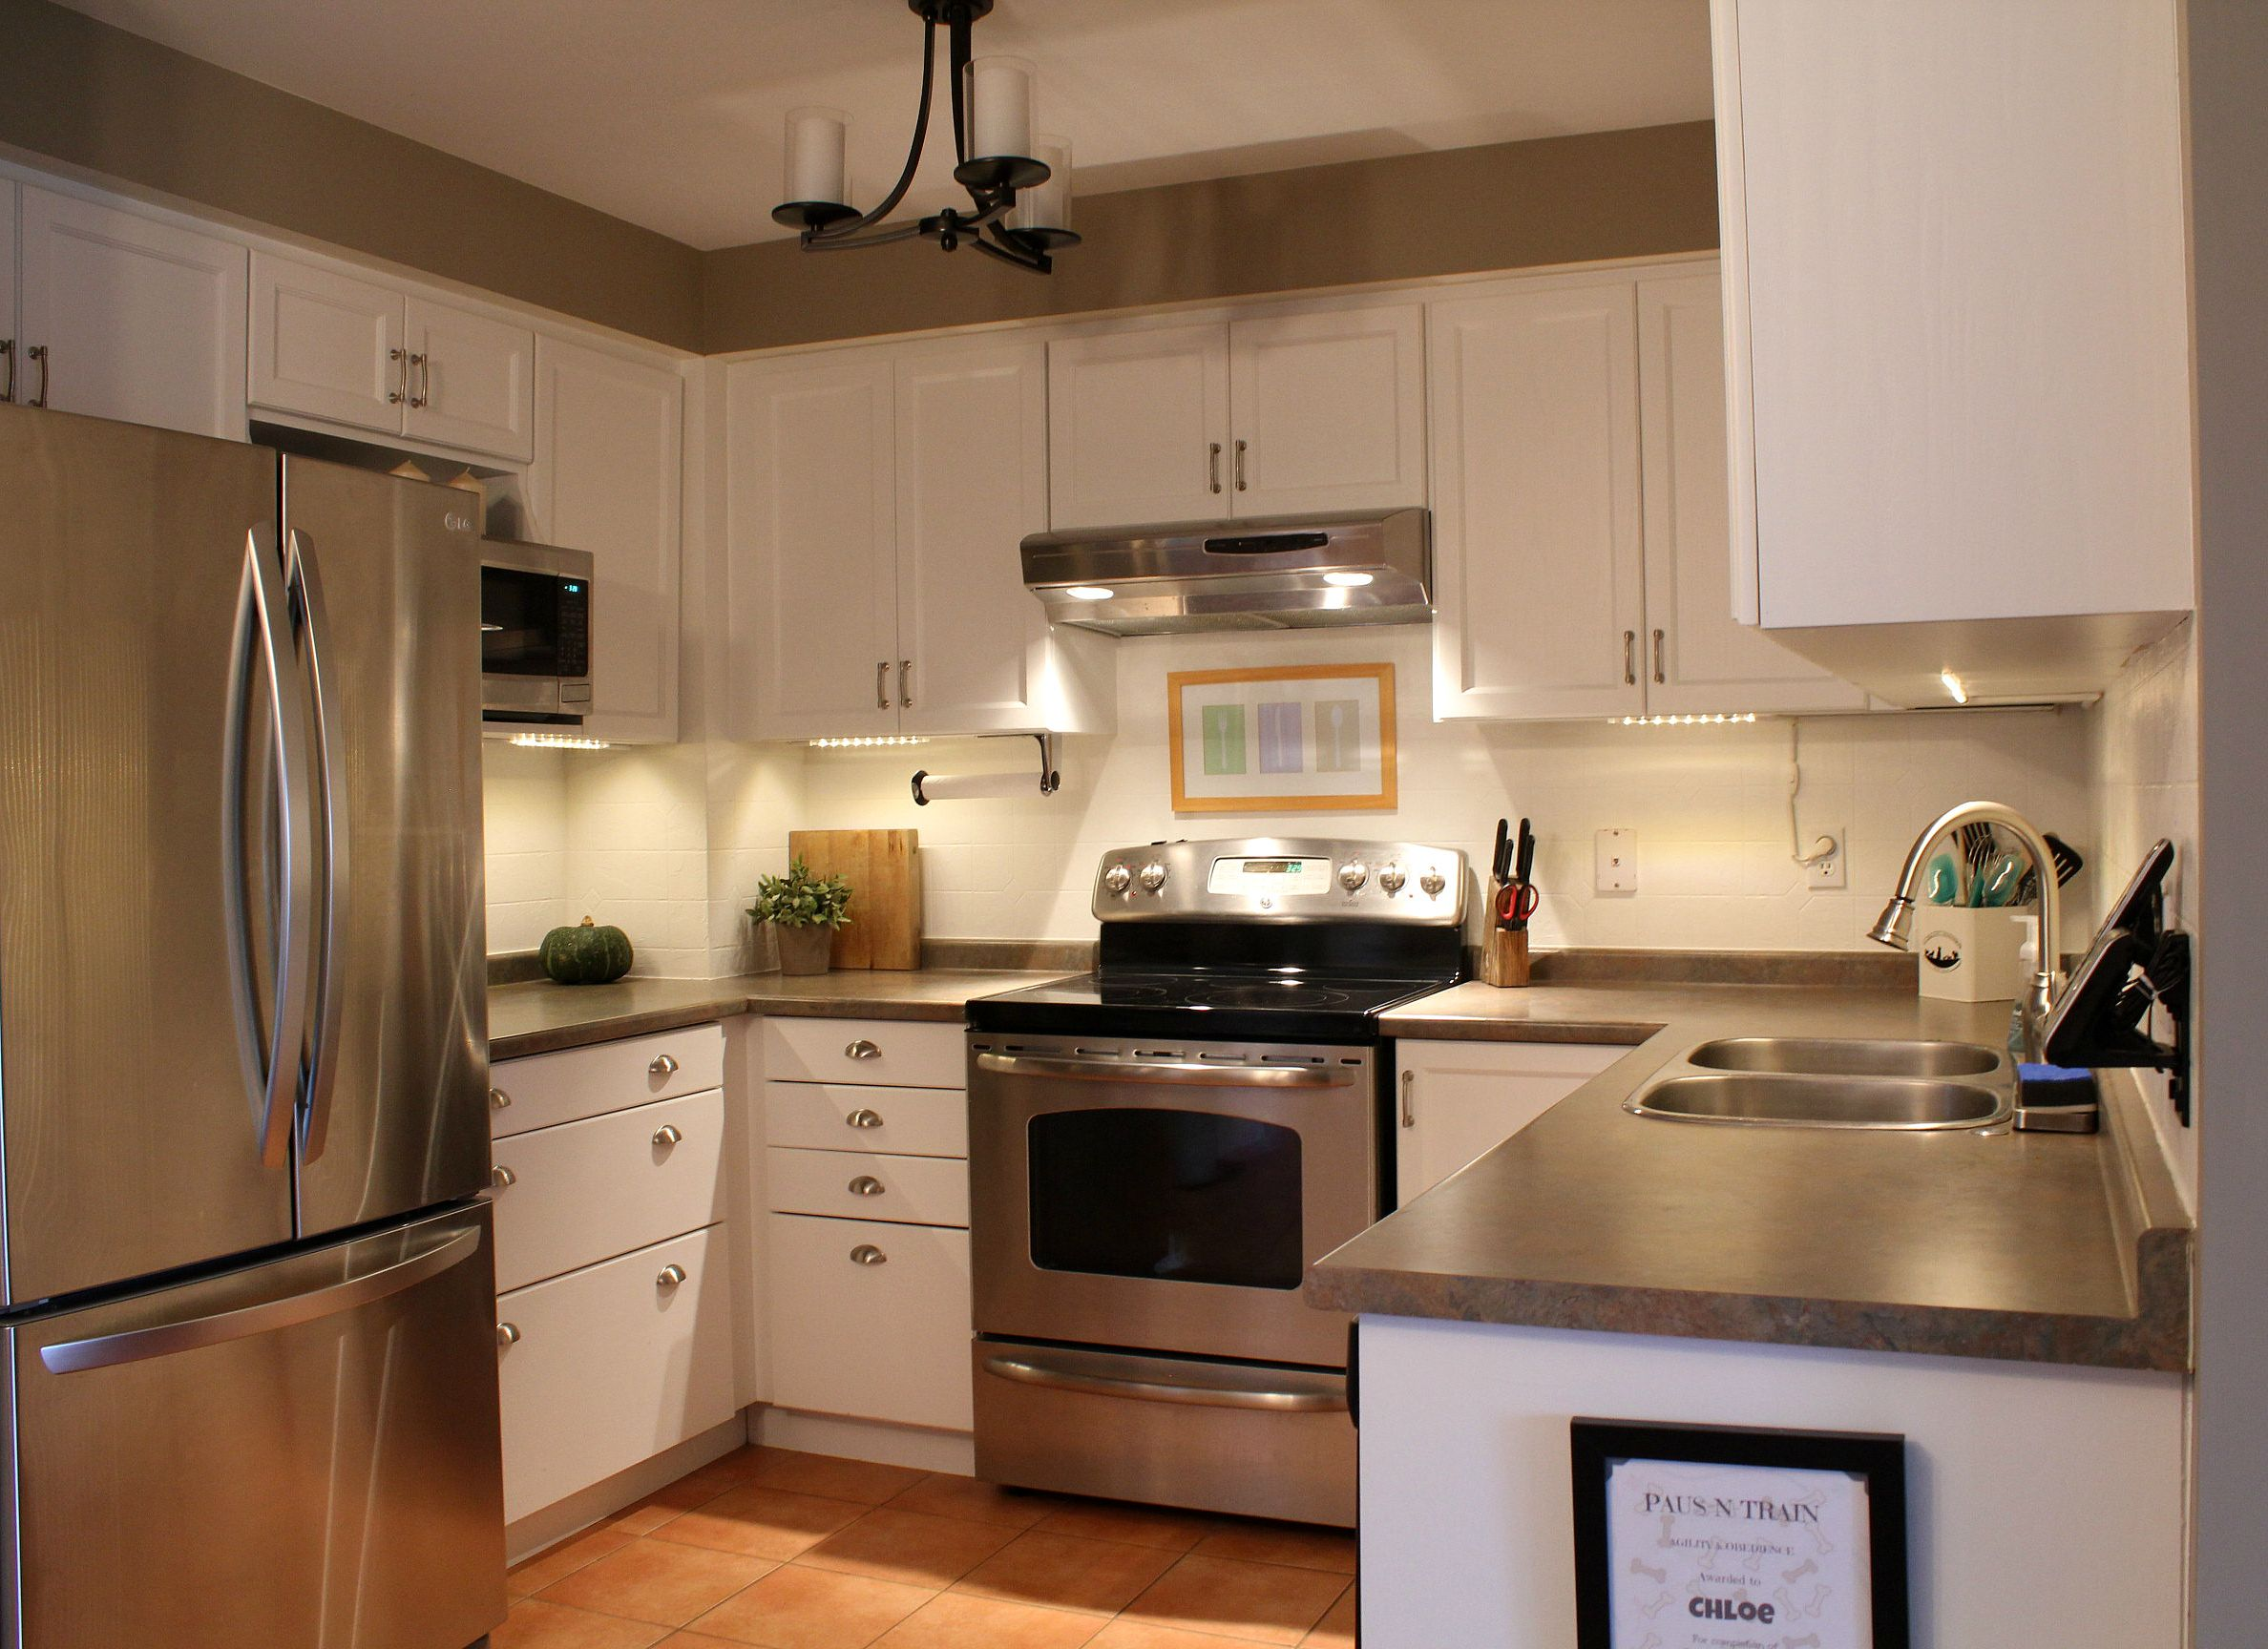 kitchen cabinets white paint, dark/greyish countertops, greige walls ...